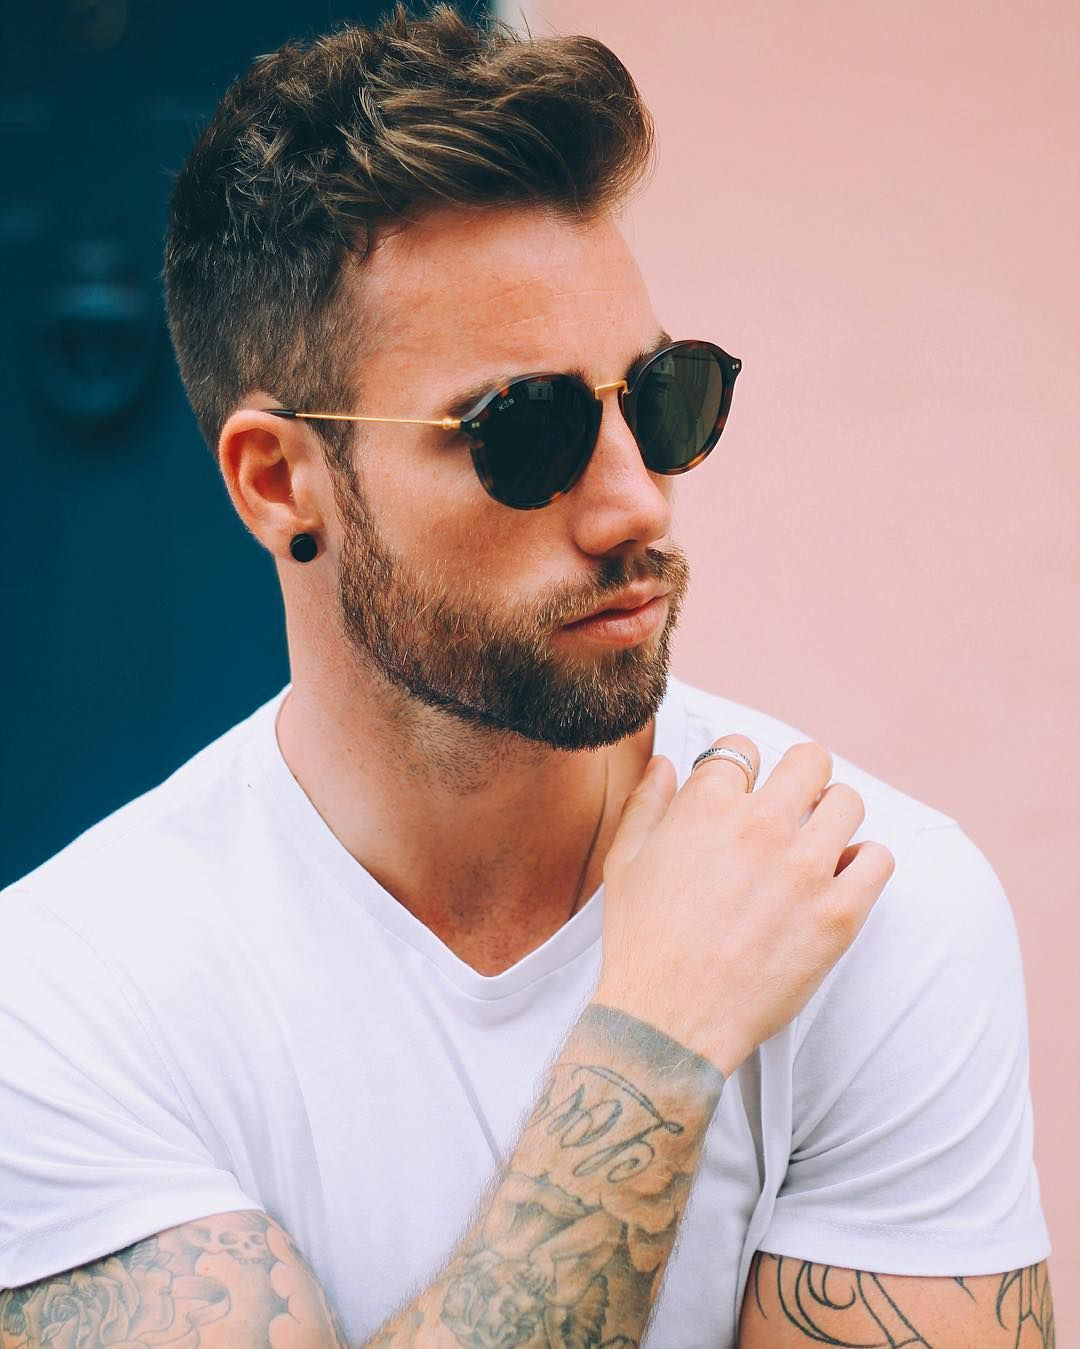 Mens Hairstyles With Glasses 12 Stylish Guys Haircuts For Fall 2016 Guy Haircuts Fall 2016